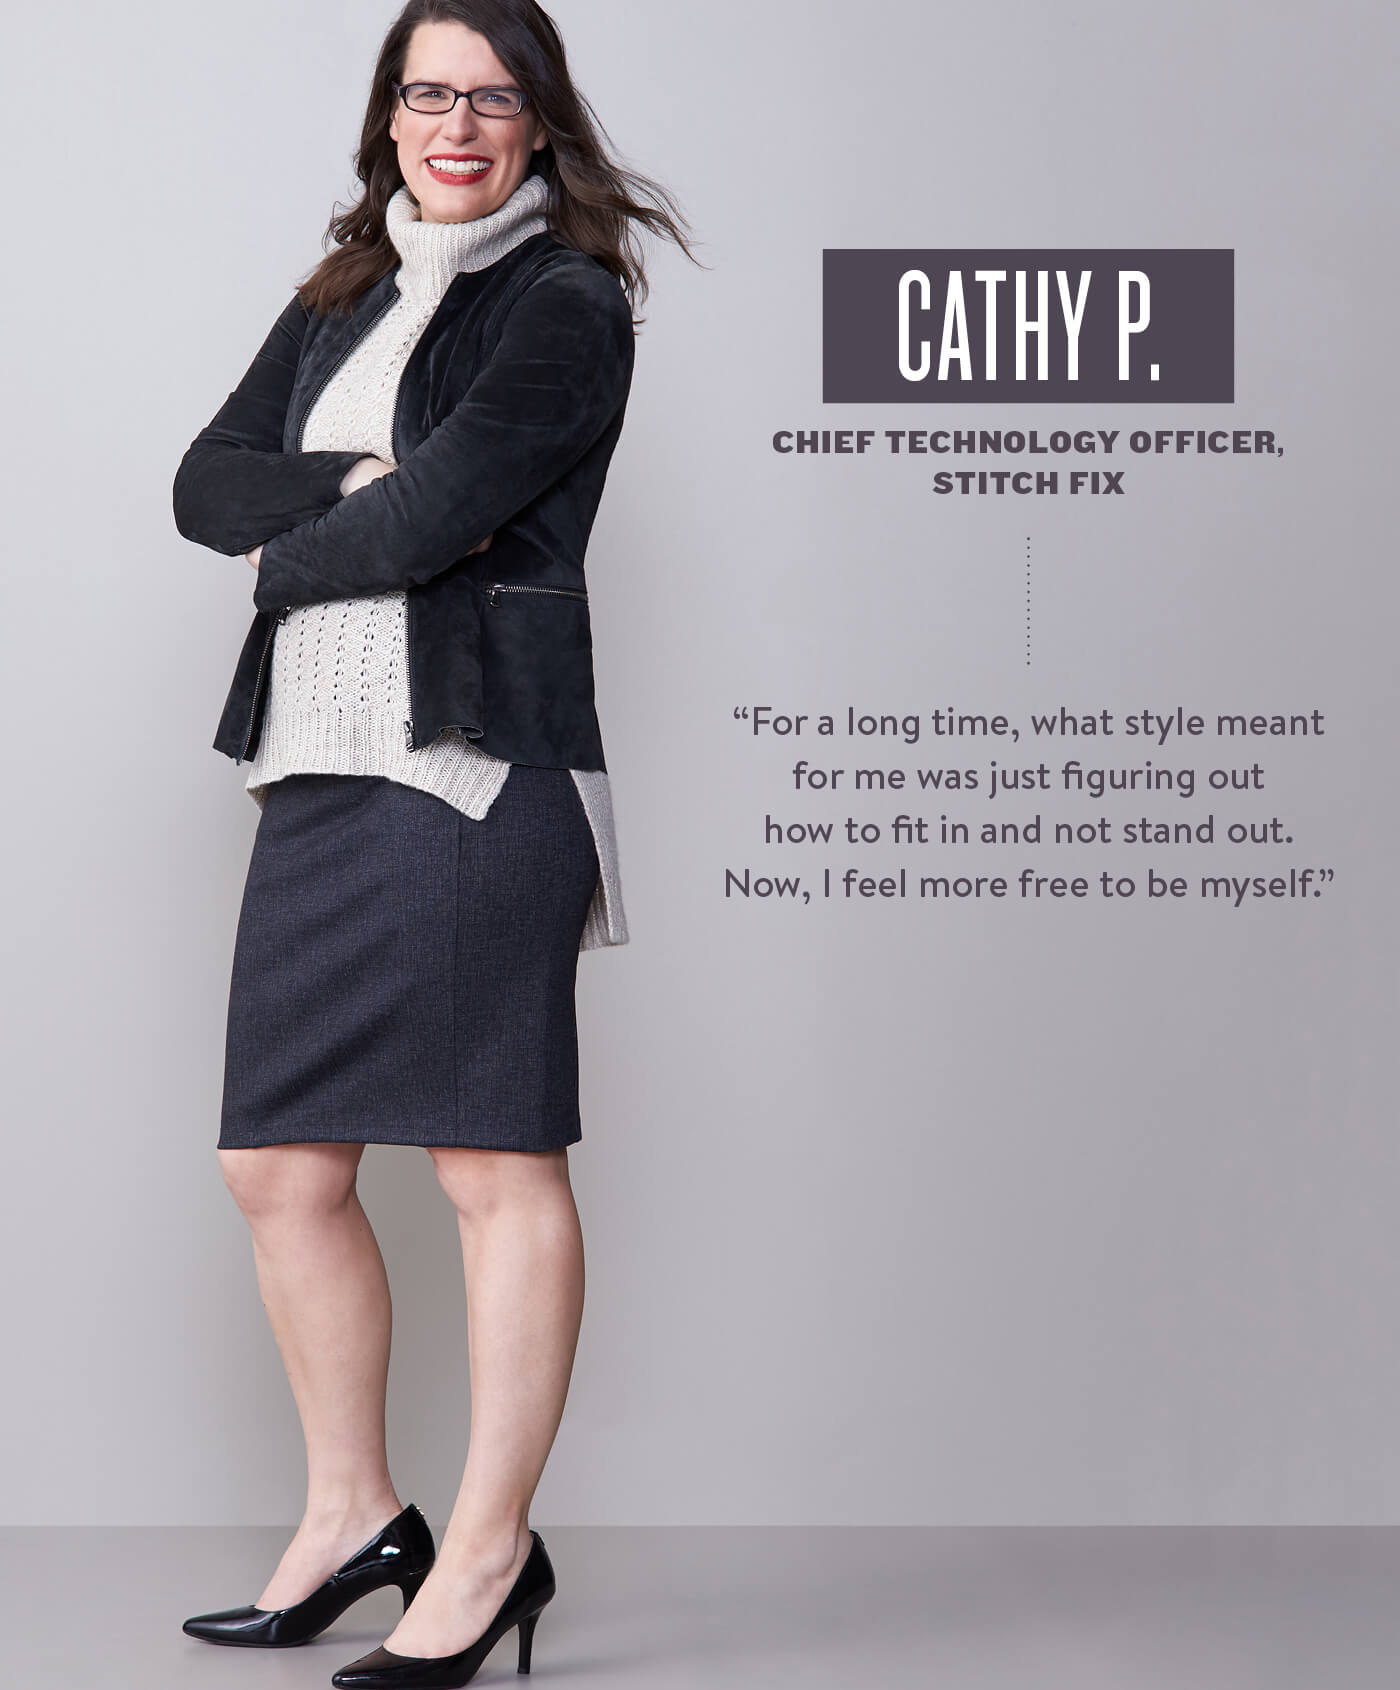 Stitch Fix: Women Who Redefine the Rules